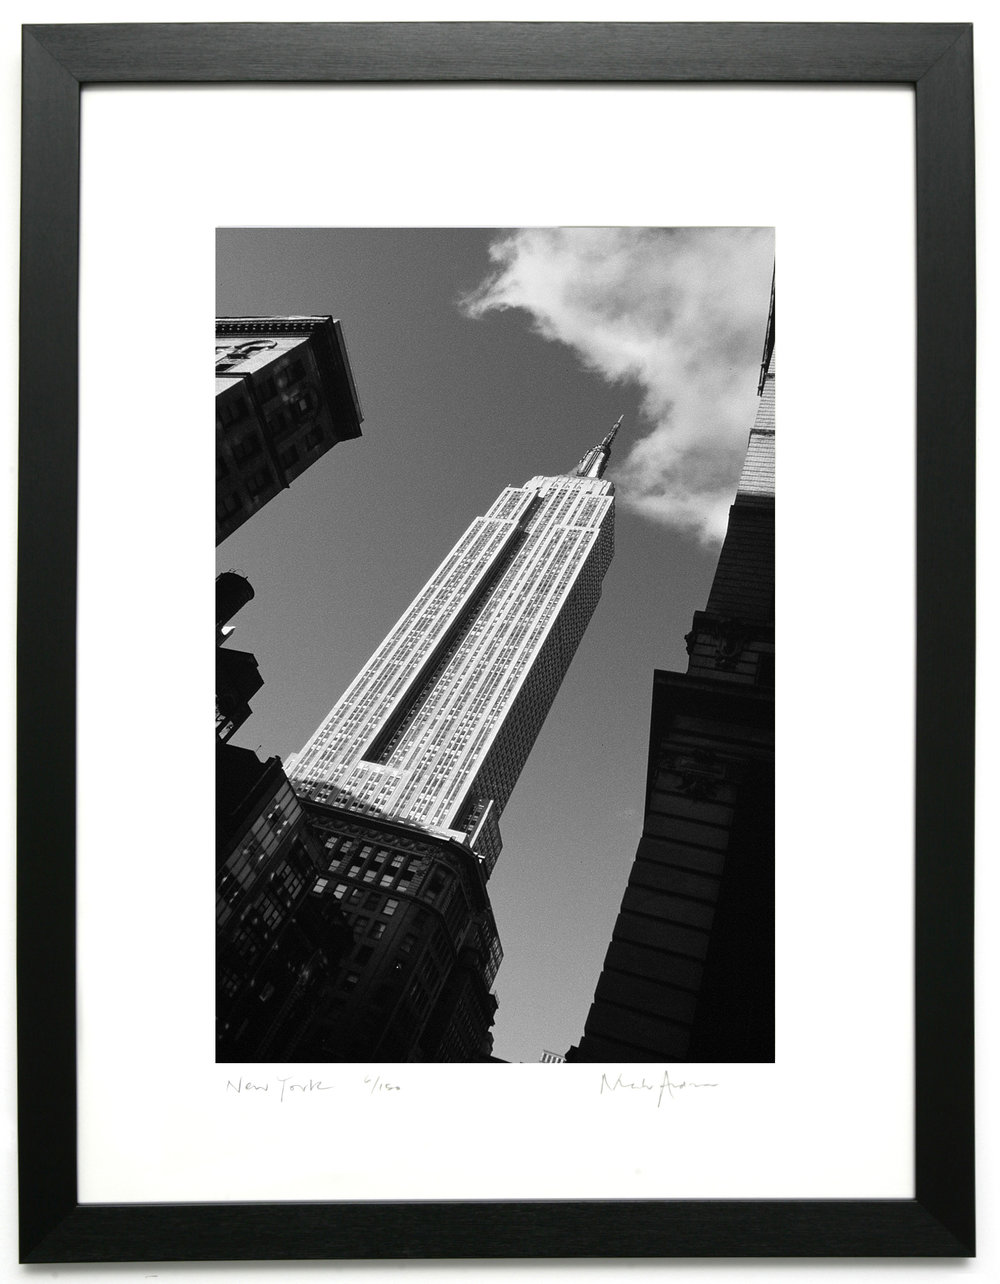 Framed print of new york empire state building new york